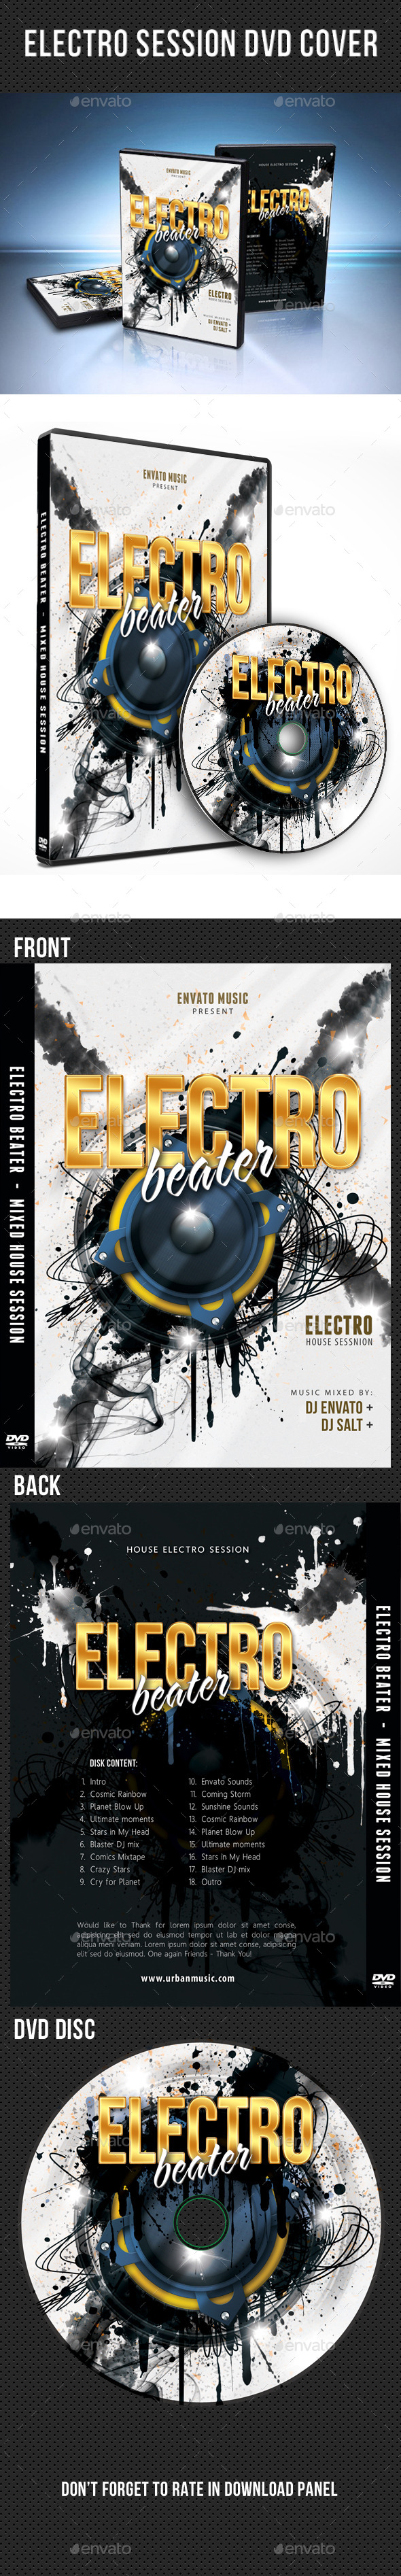 Electro Session DVD Cover Template V02 - CD & DVD Artwork Print Templates